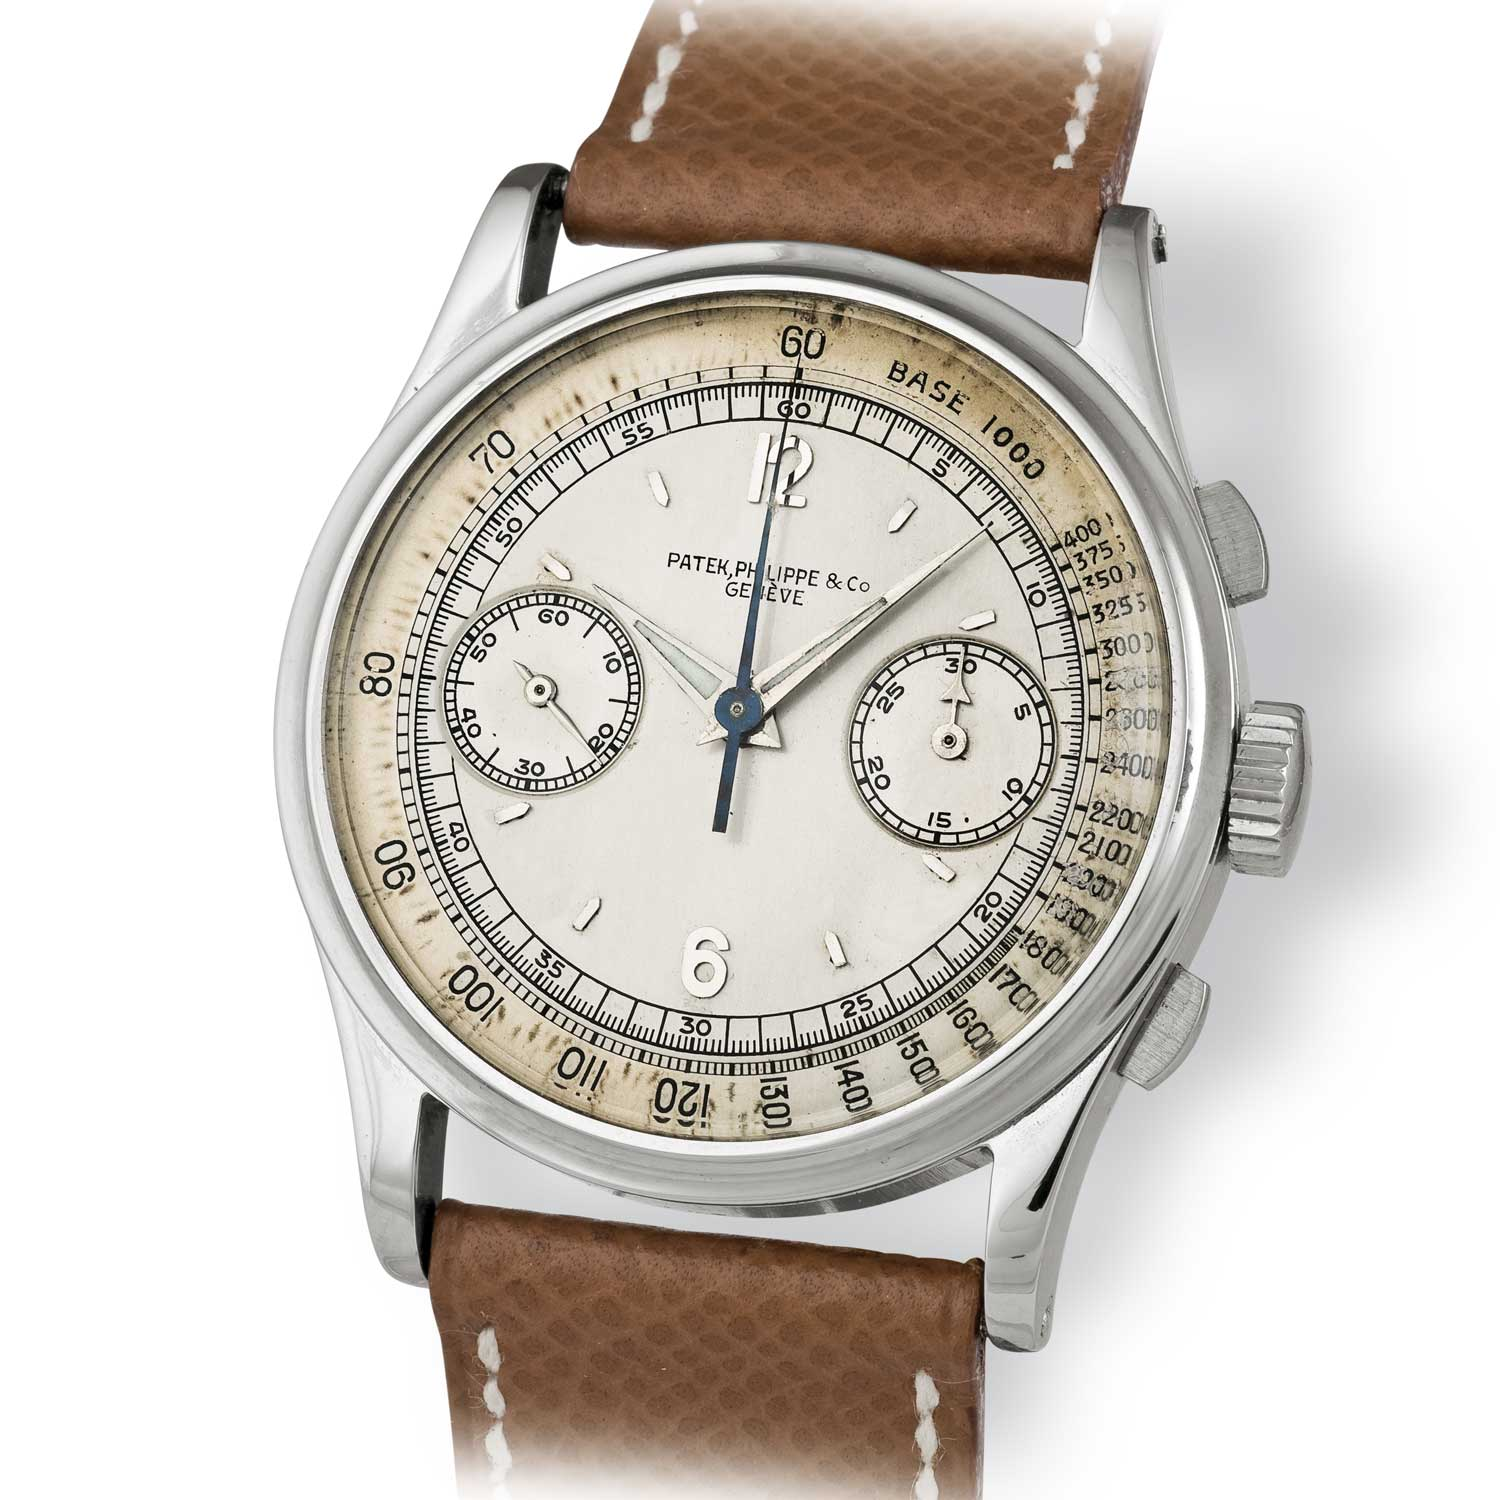 Patek Philippe ref. 530 steel chronograph with Arabic numerals (Image: John Goldberger)